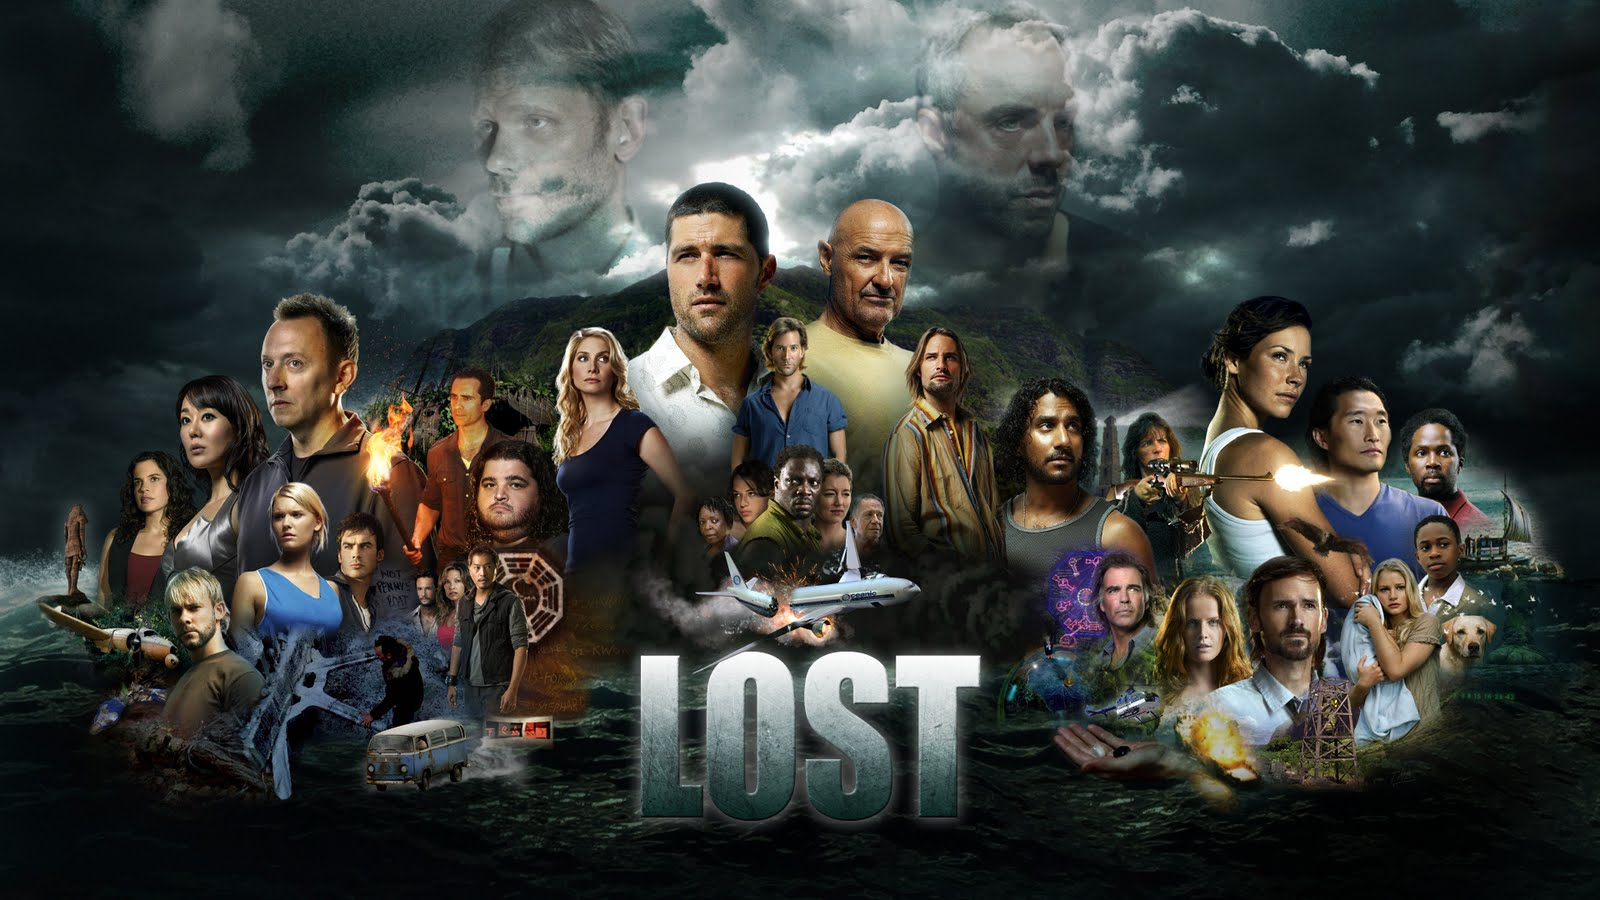 THE_COMPLETE_LOST_WALLPAPER.jpg